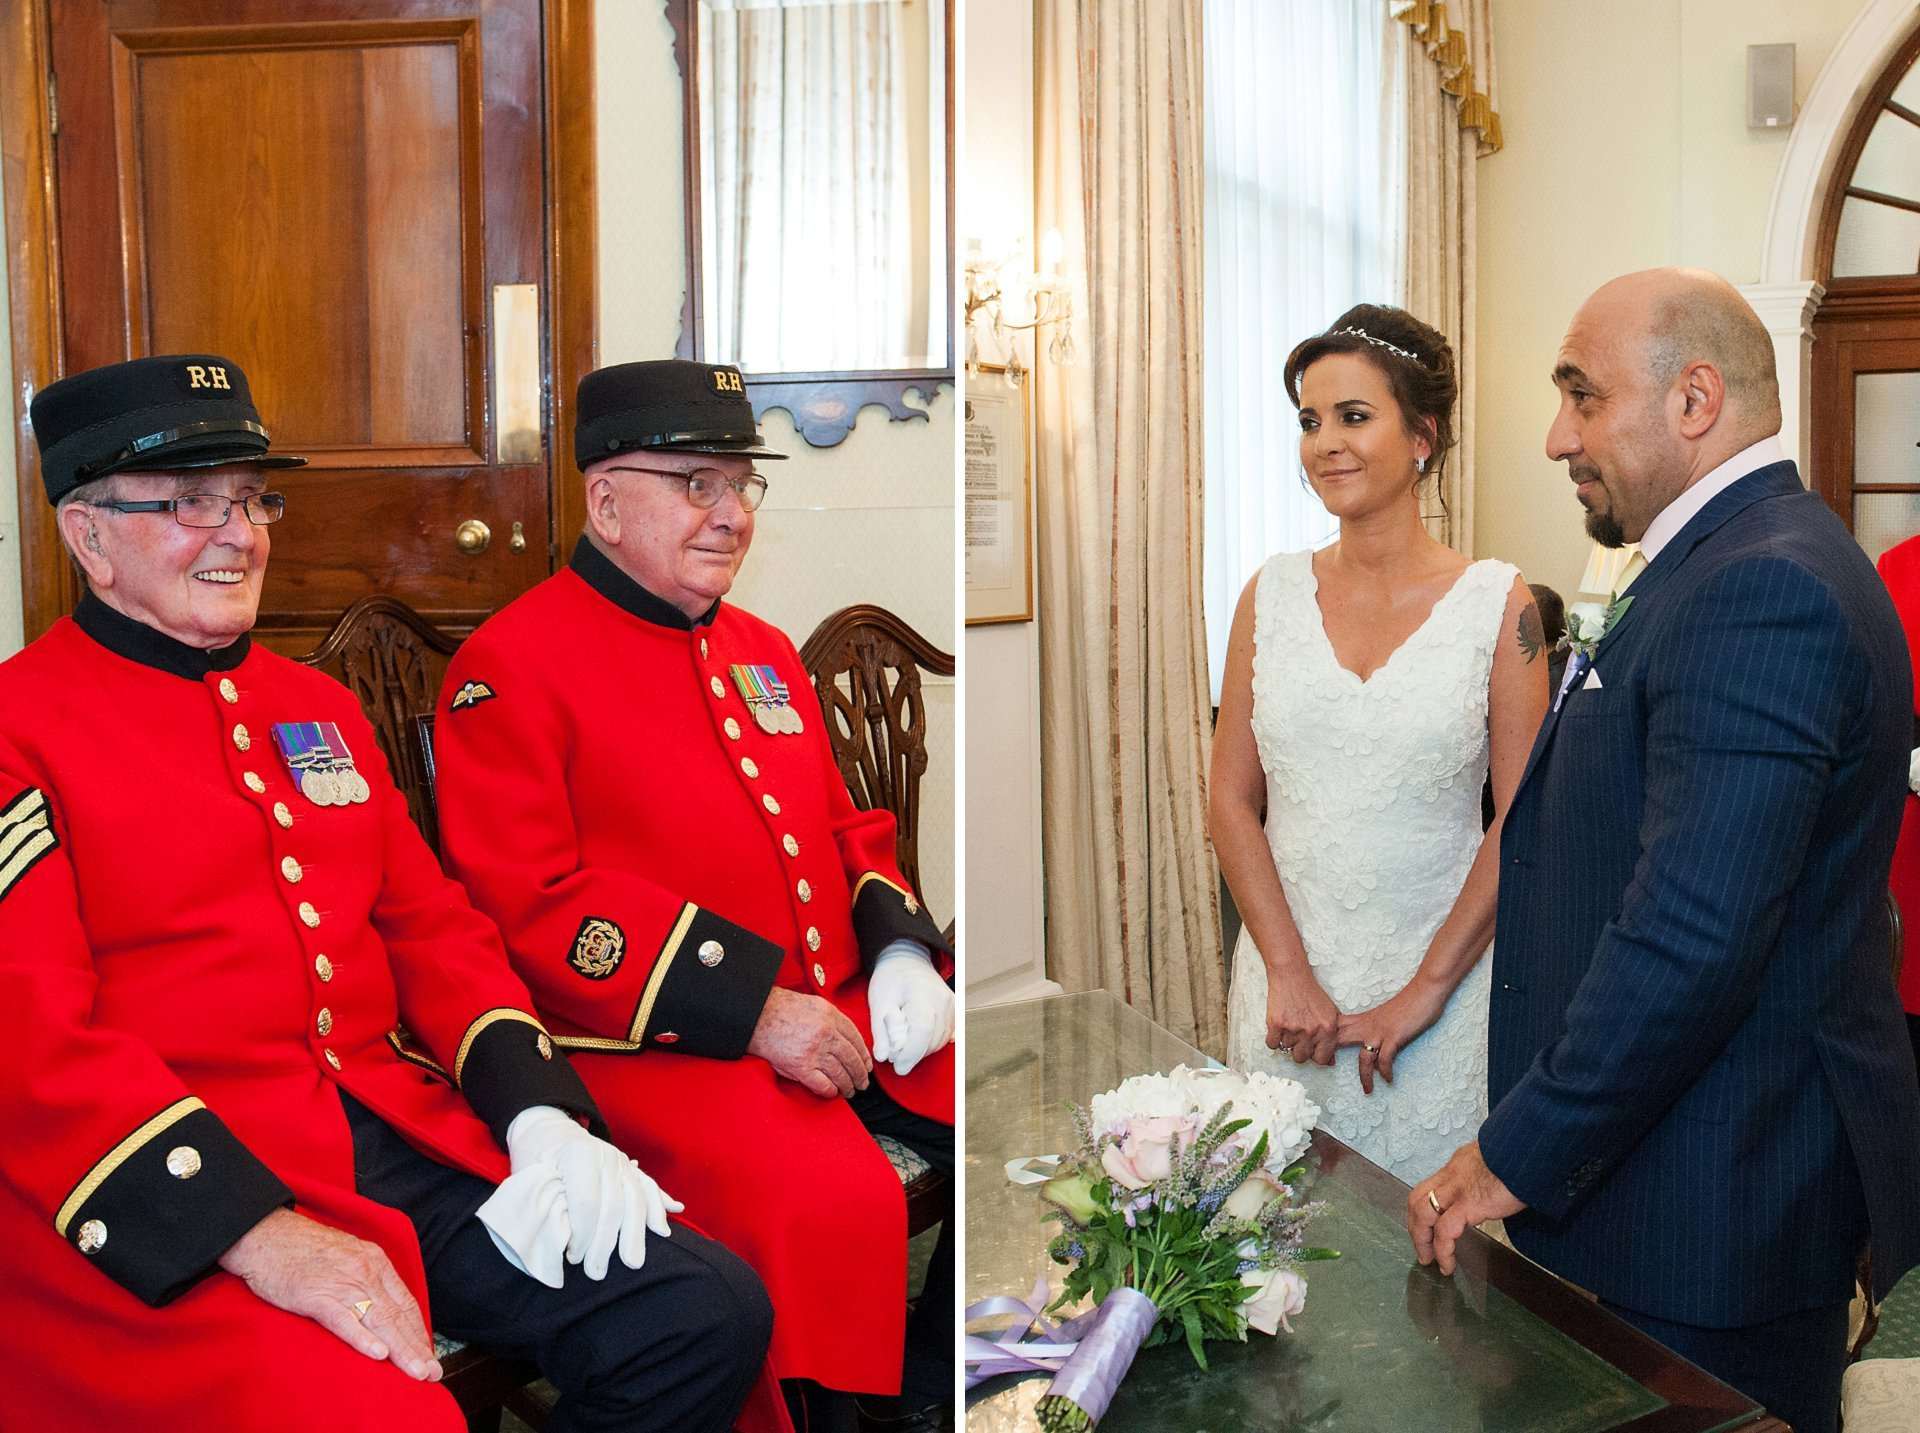 Chelsea Pensioners and bride & groom inside the Rossetti Room at Chelsea Register Office on King's Road